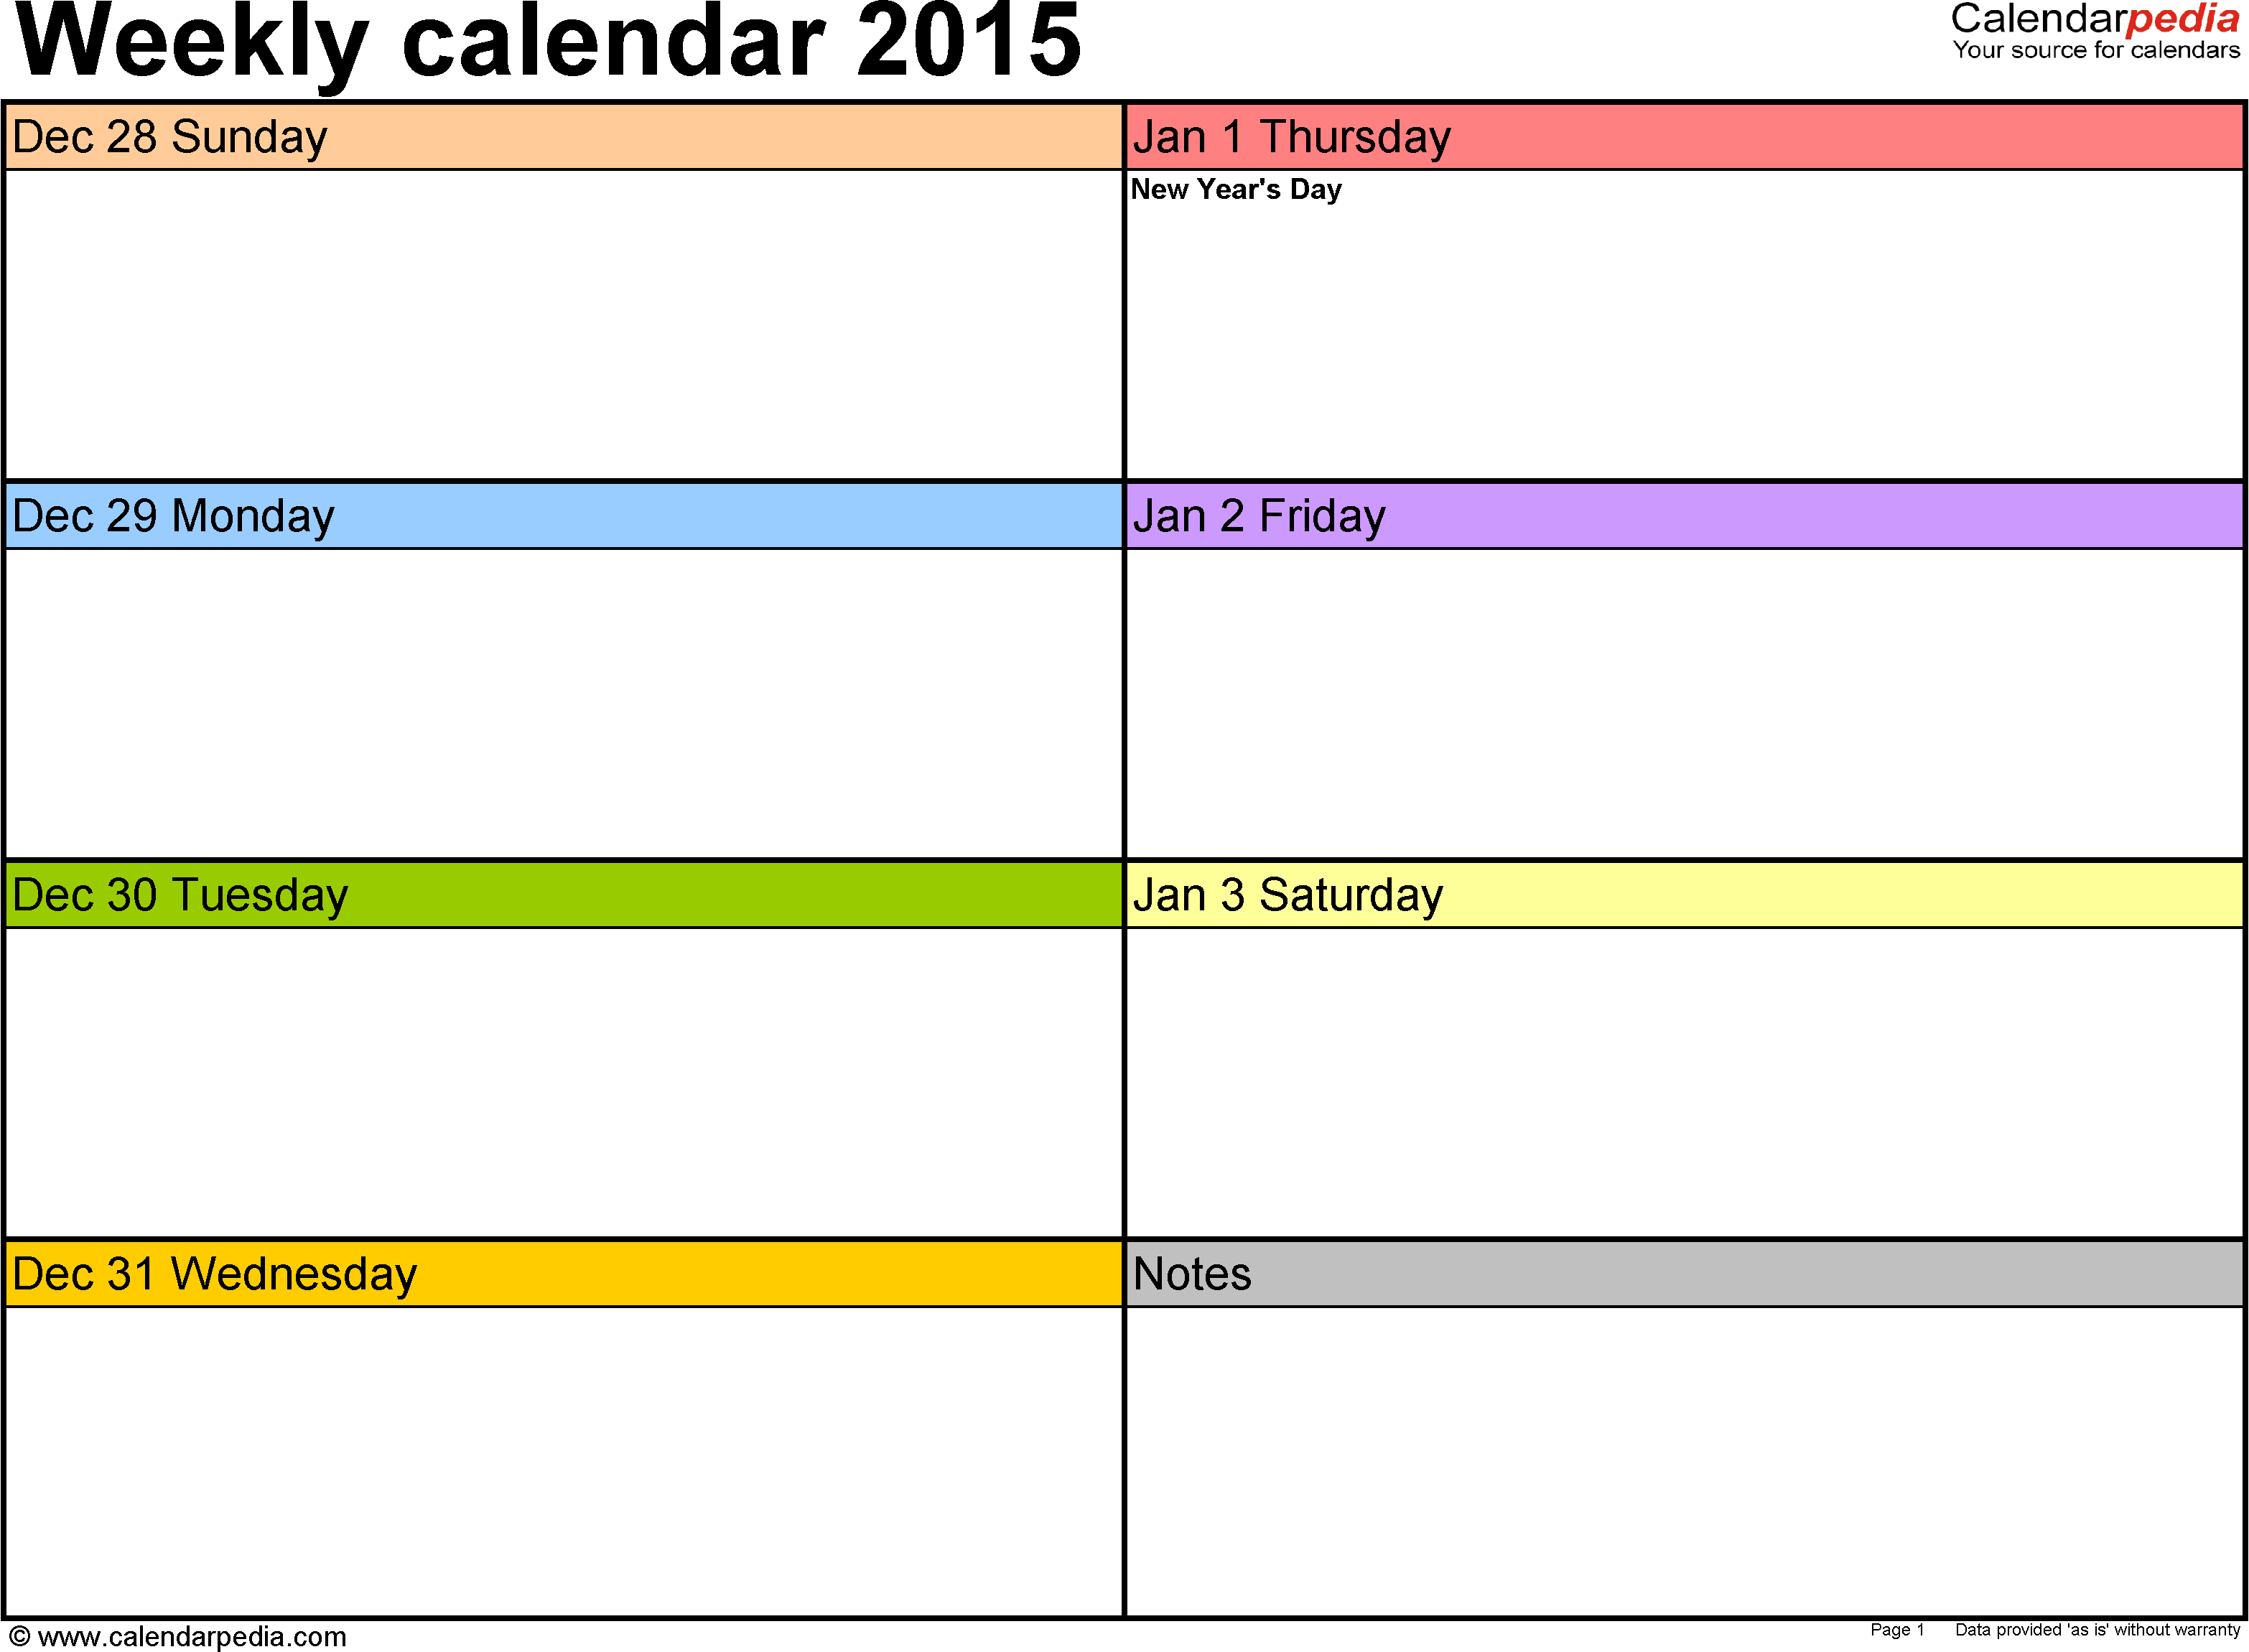 weekly calendar 2015 template for pdf version 6 landscape 53 pages in